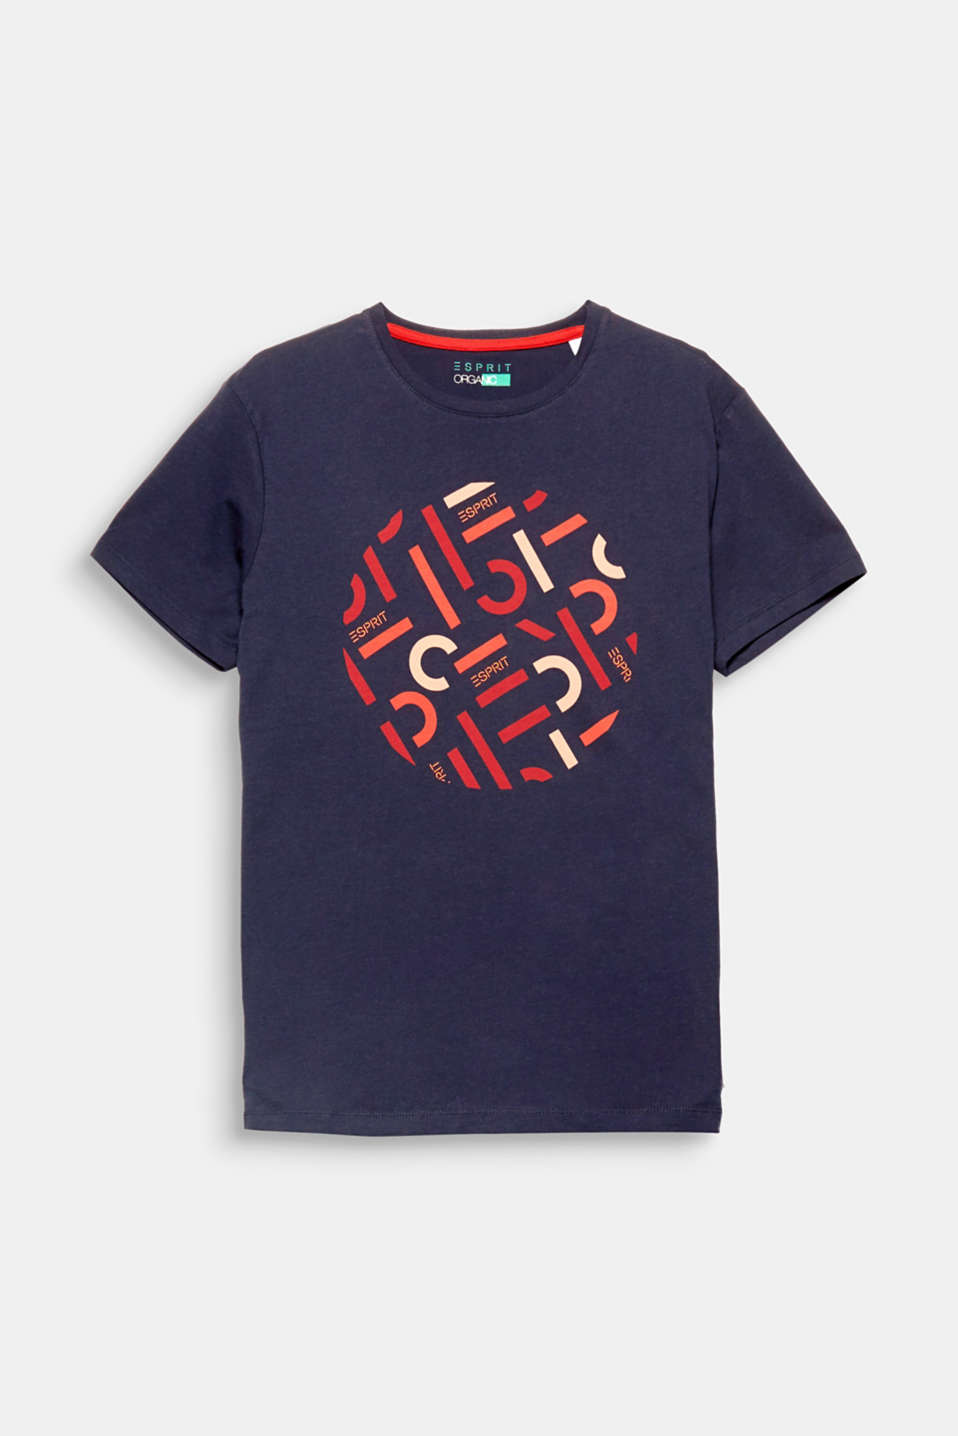 We love ESPRIT! The authentic logo print gives this T-shirt containing high-quality organic cotton a cool look.